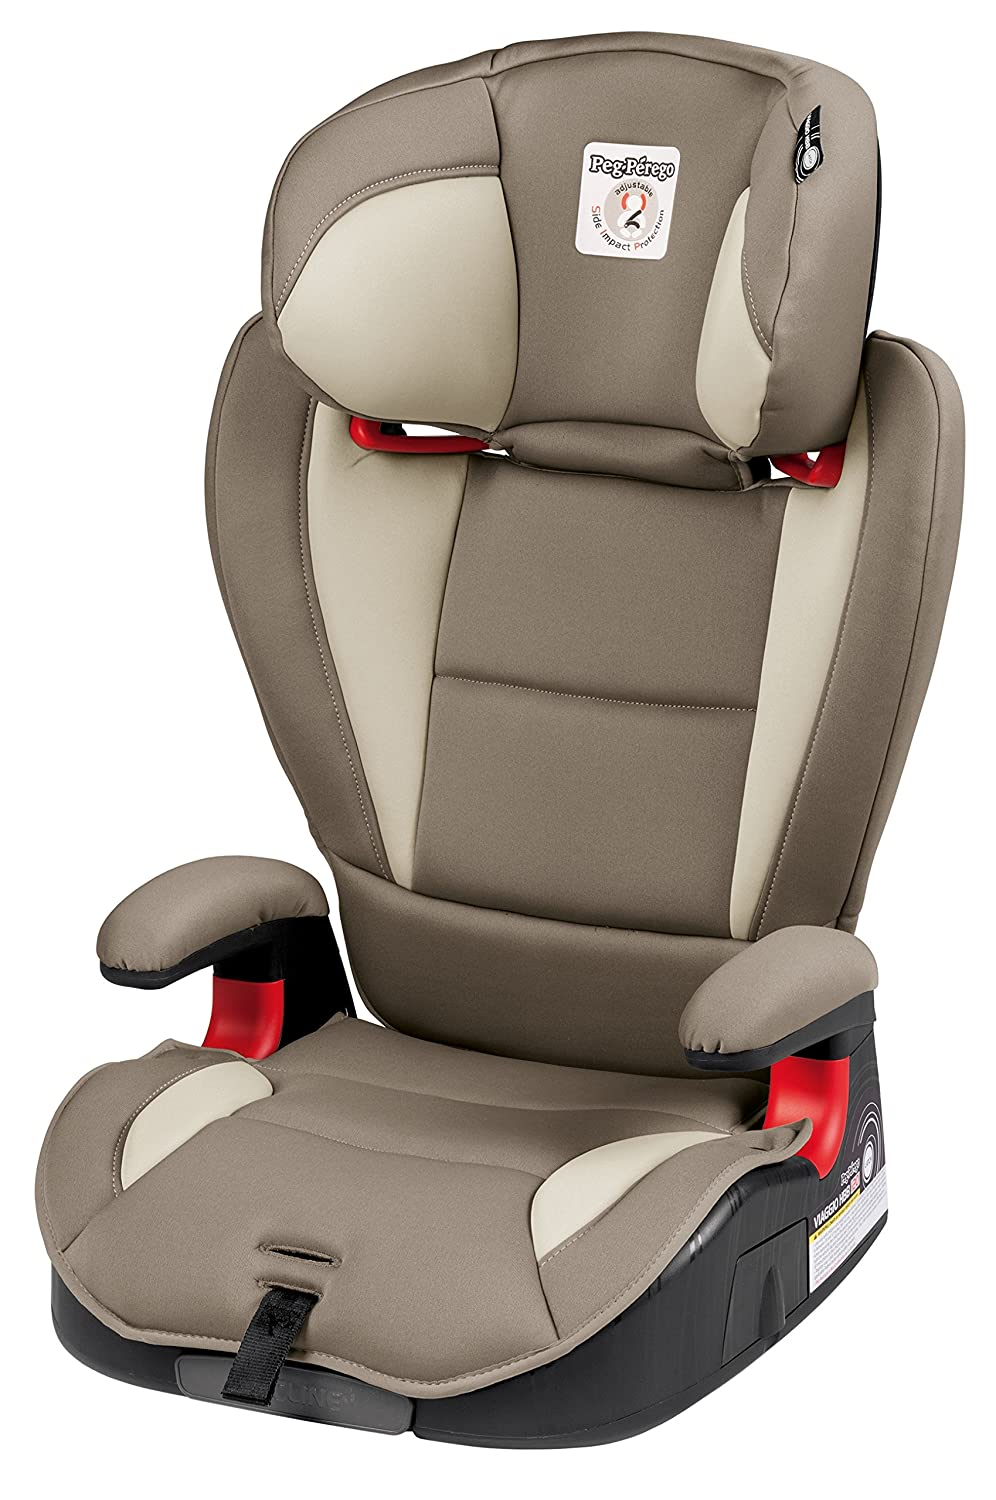 Peg Perego USA Viaggio HBB 120 Car Seat, Panama by Peg Perego: Amazon.es: Bebé